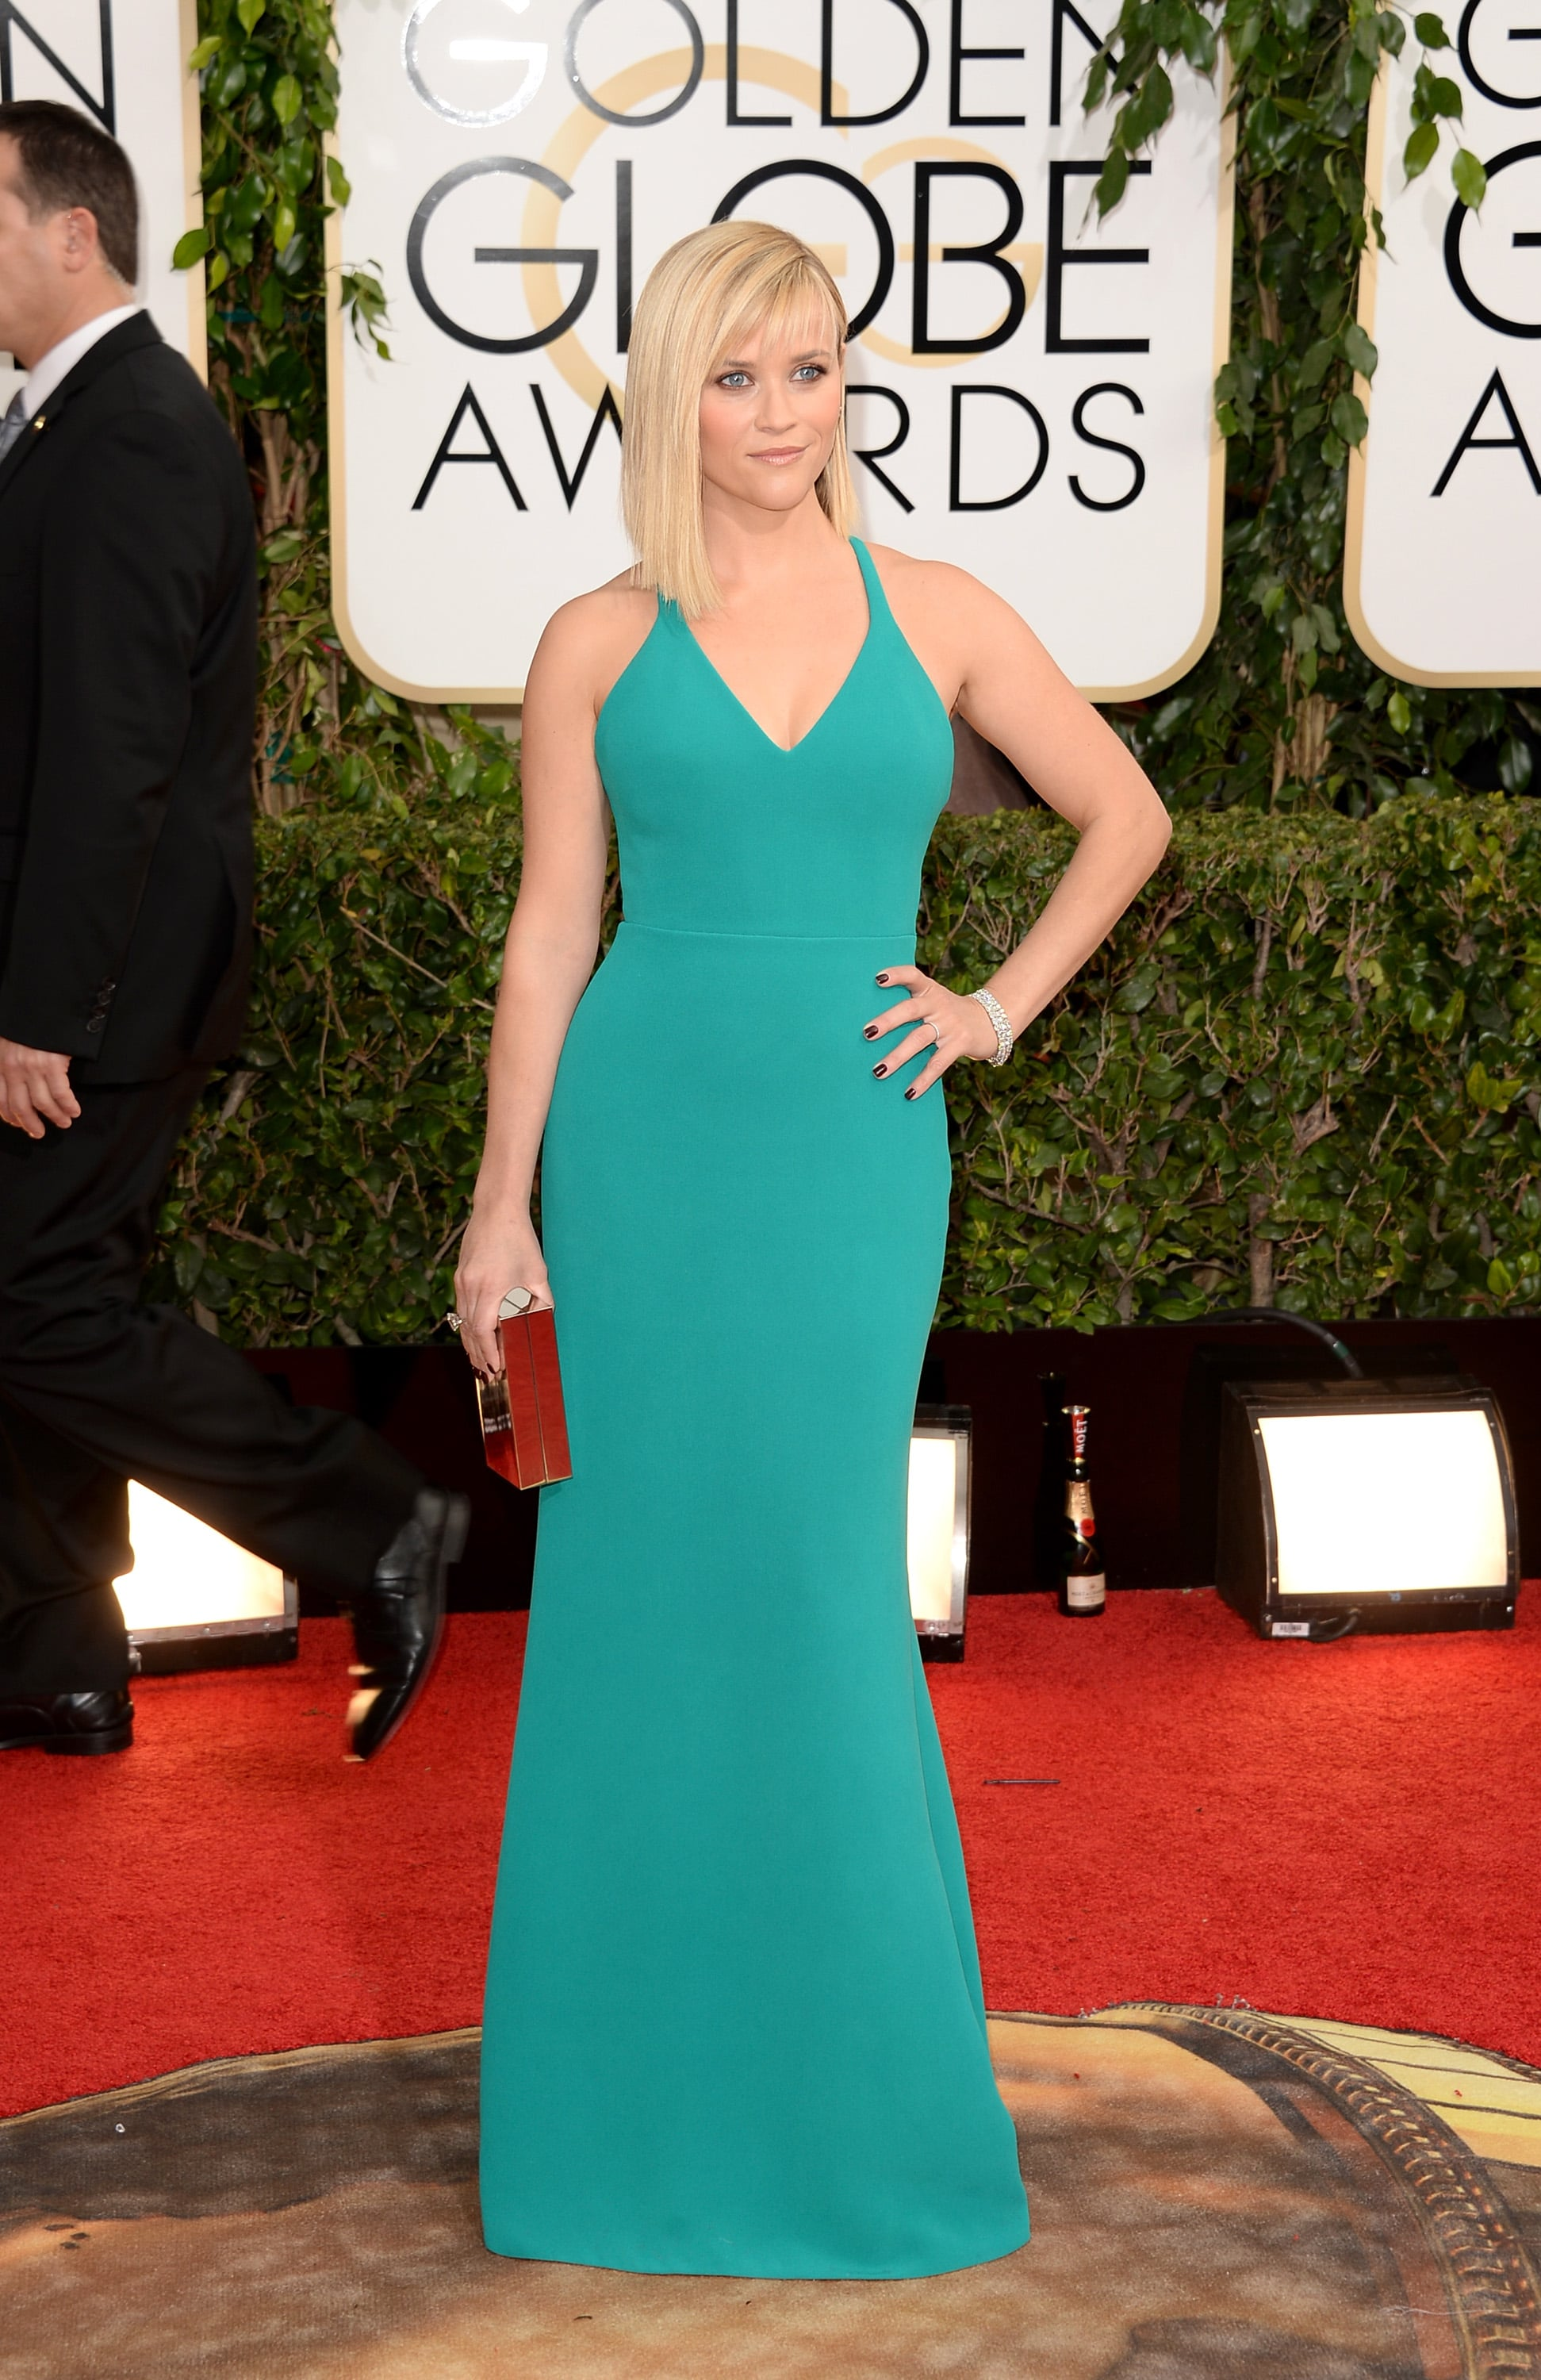 Reese Witherspoon showed off her fit figure at the Golden Globes.